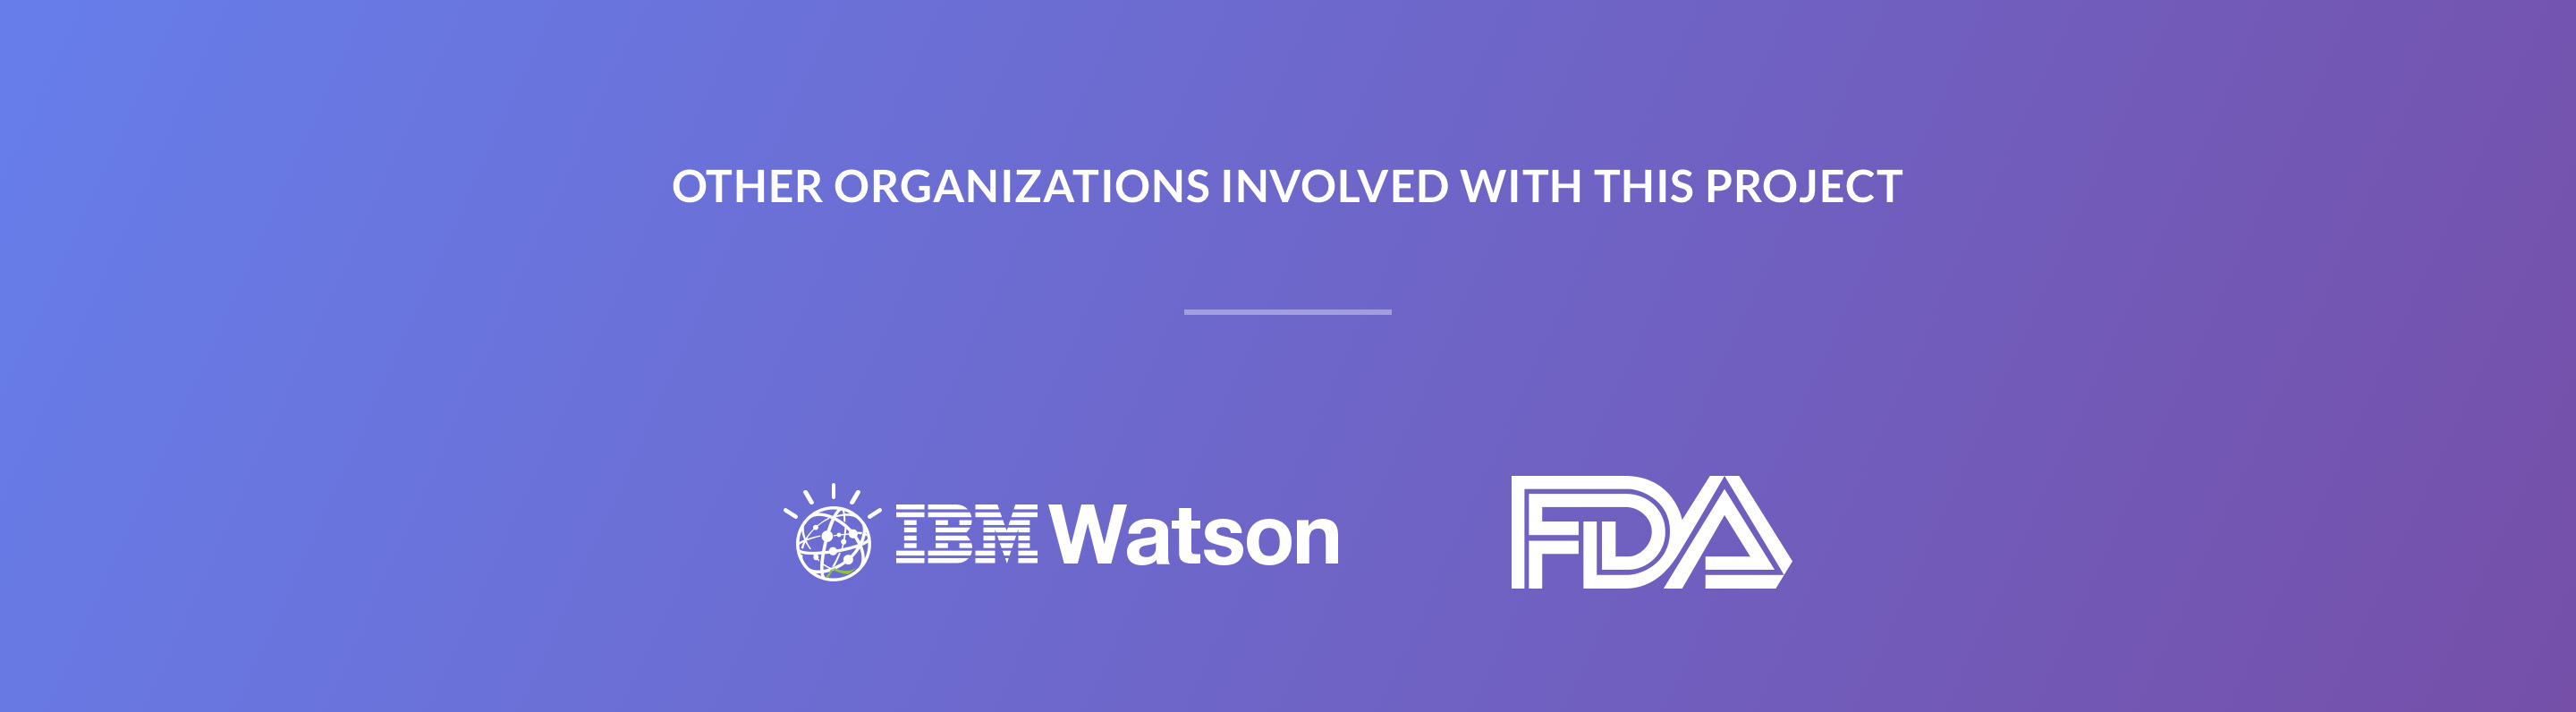 Other organizations involved with this project: IBM Watson, FDA.